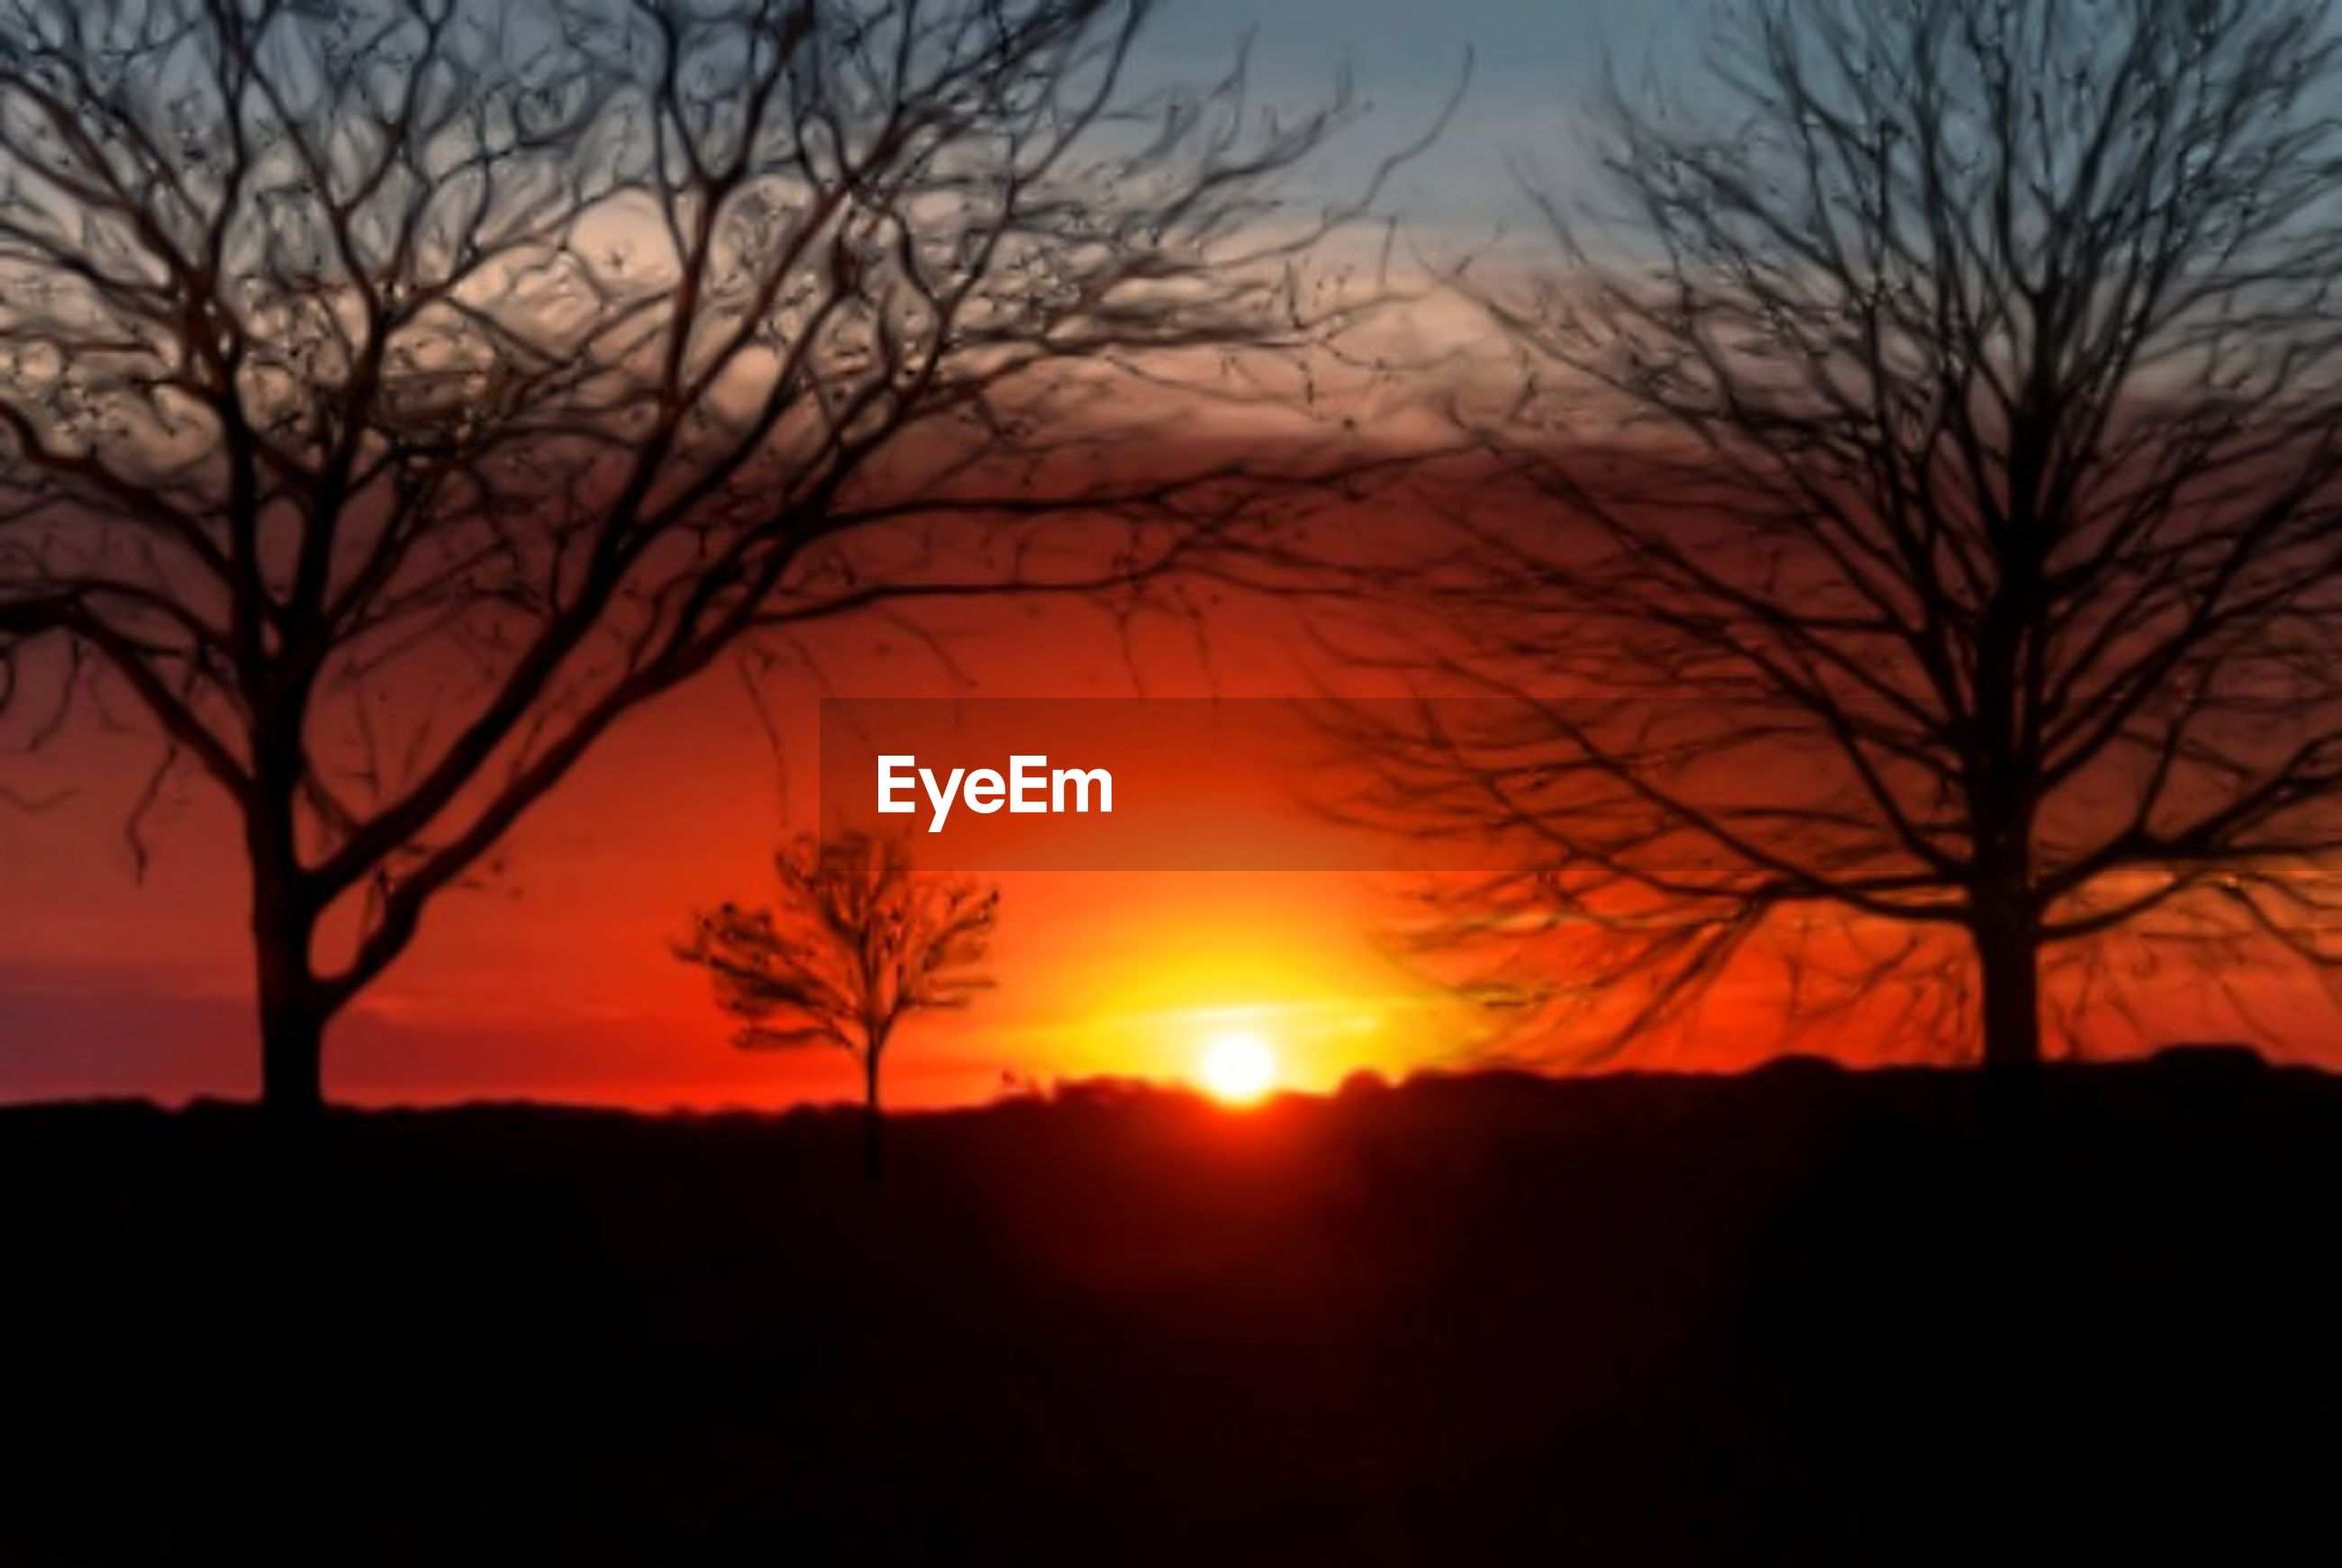 silhouette, tree, sunset, sky, scenics - nature, orange color, plant, bare tree, beauty in nature, tranquil scene, tranquility, sun, environment, nature, no people, landscape, branch, land, outdoors, non-urban scene